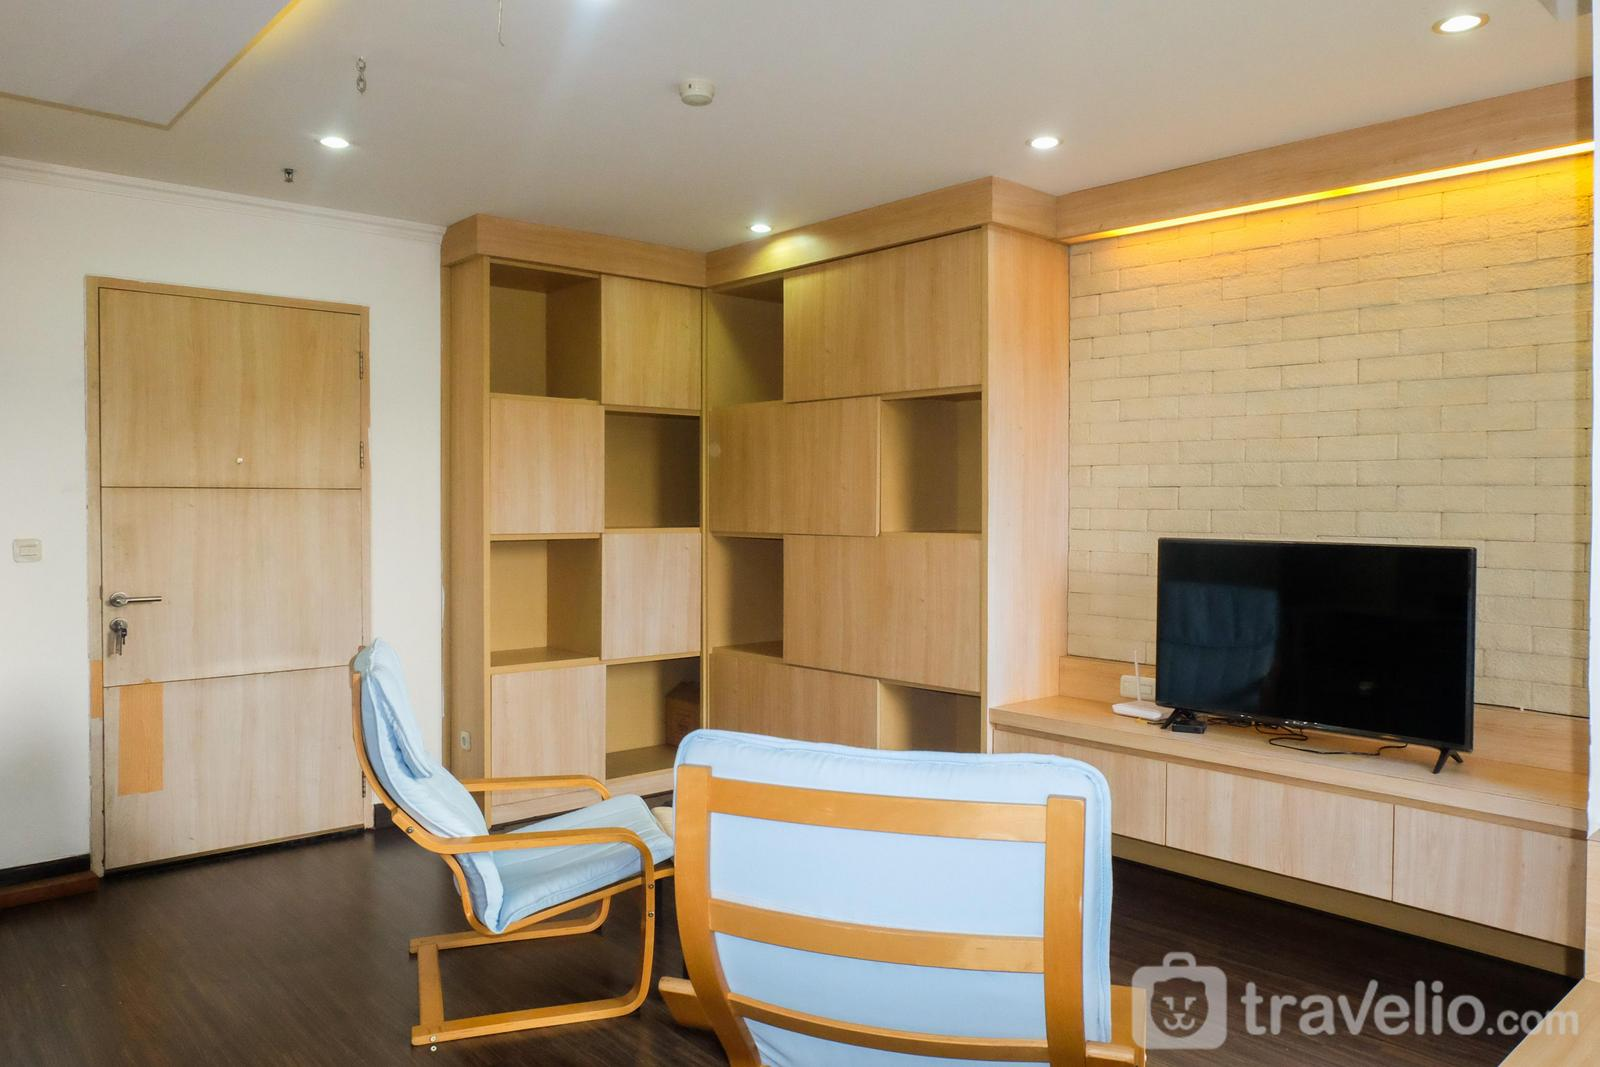 Maple Park Sunter - Spacious 1BR for 5 Pax at Maple Park Apartment By Travelio